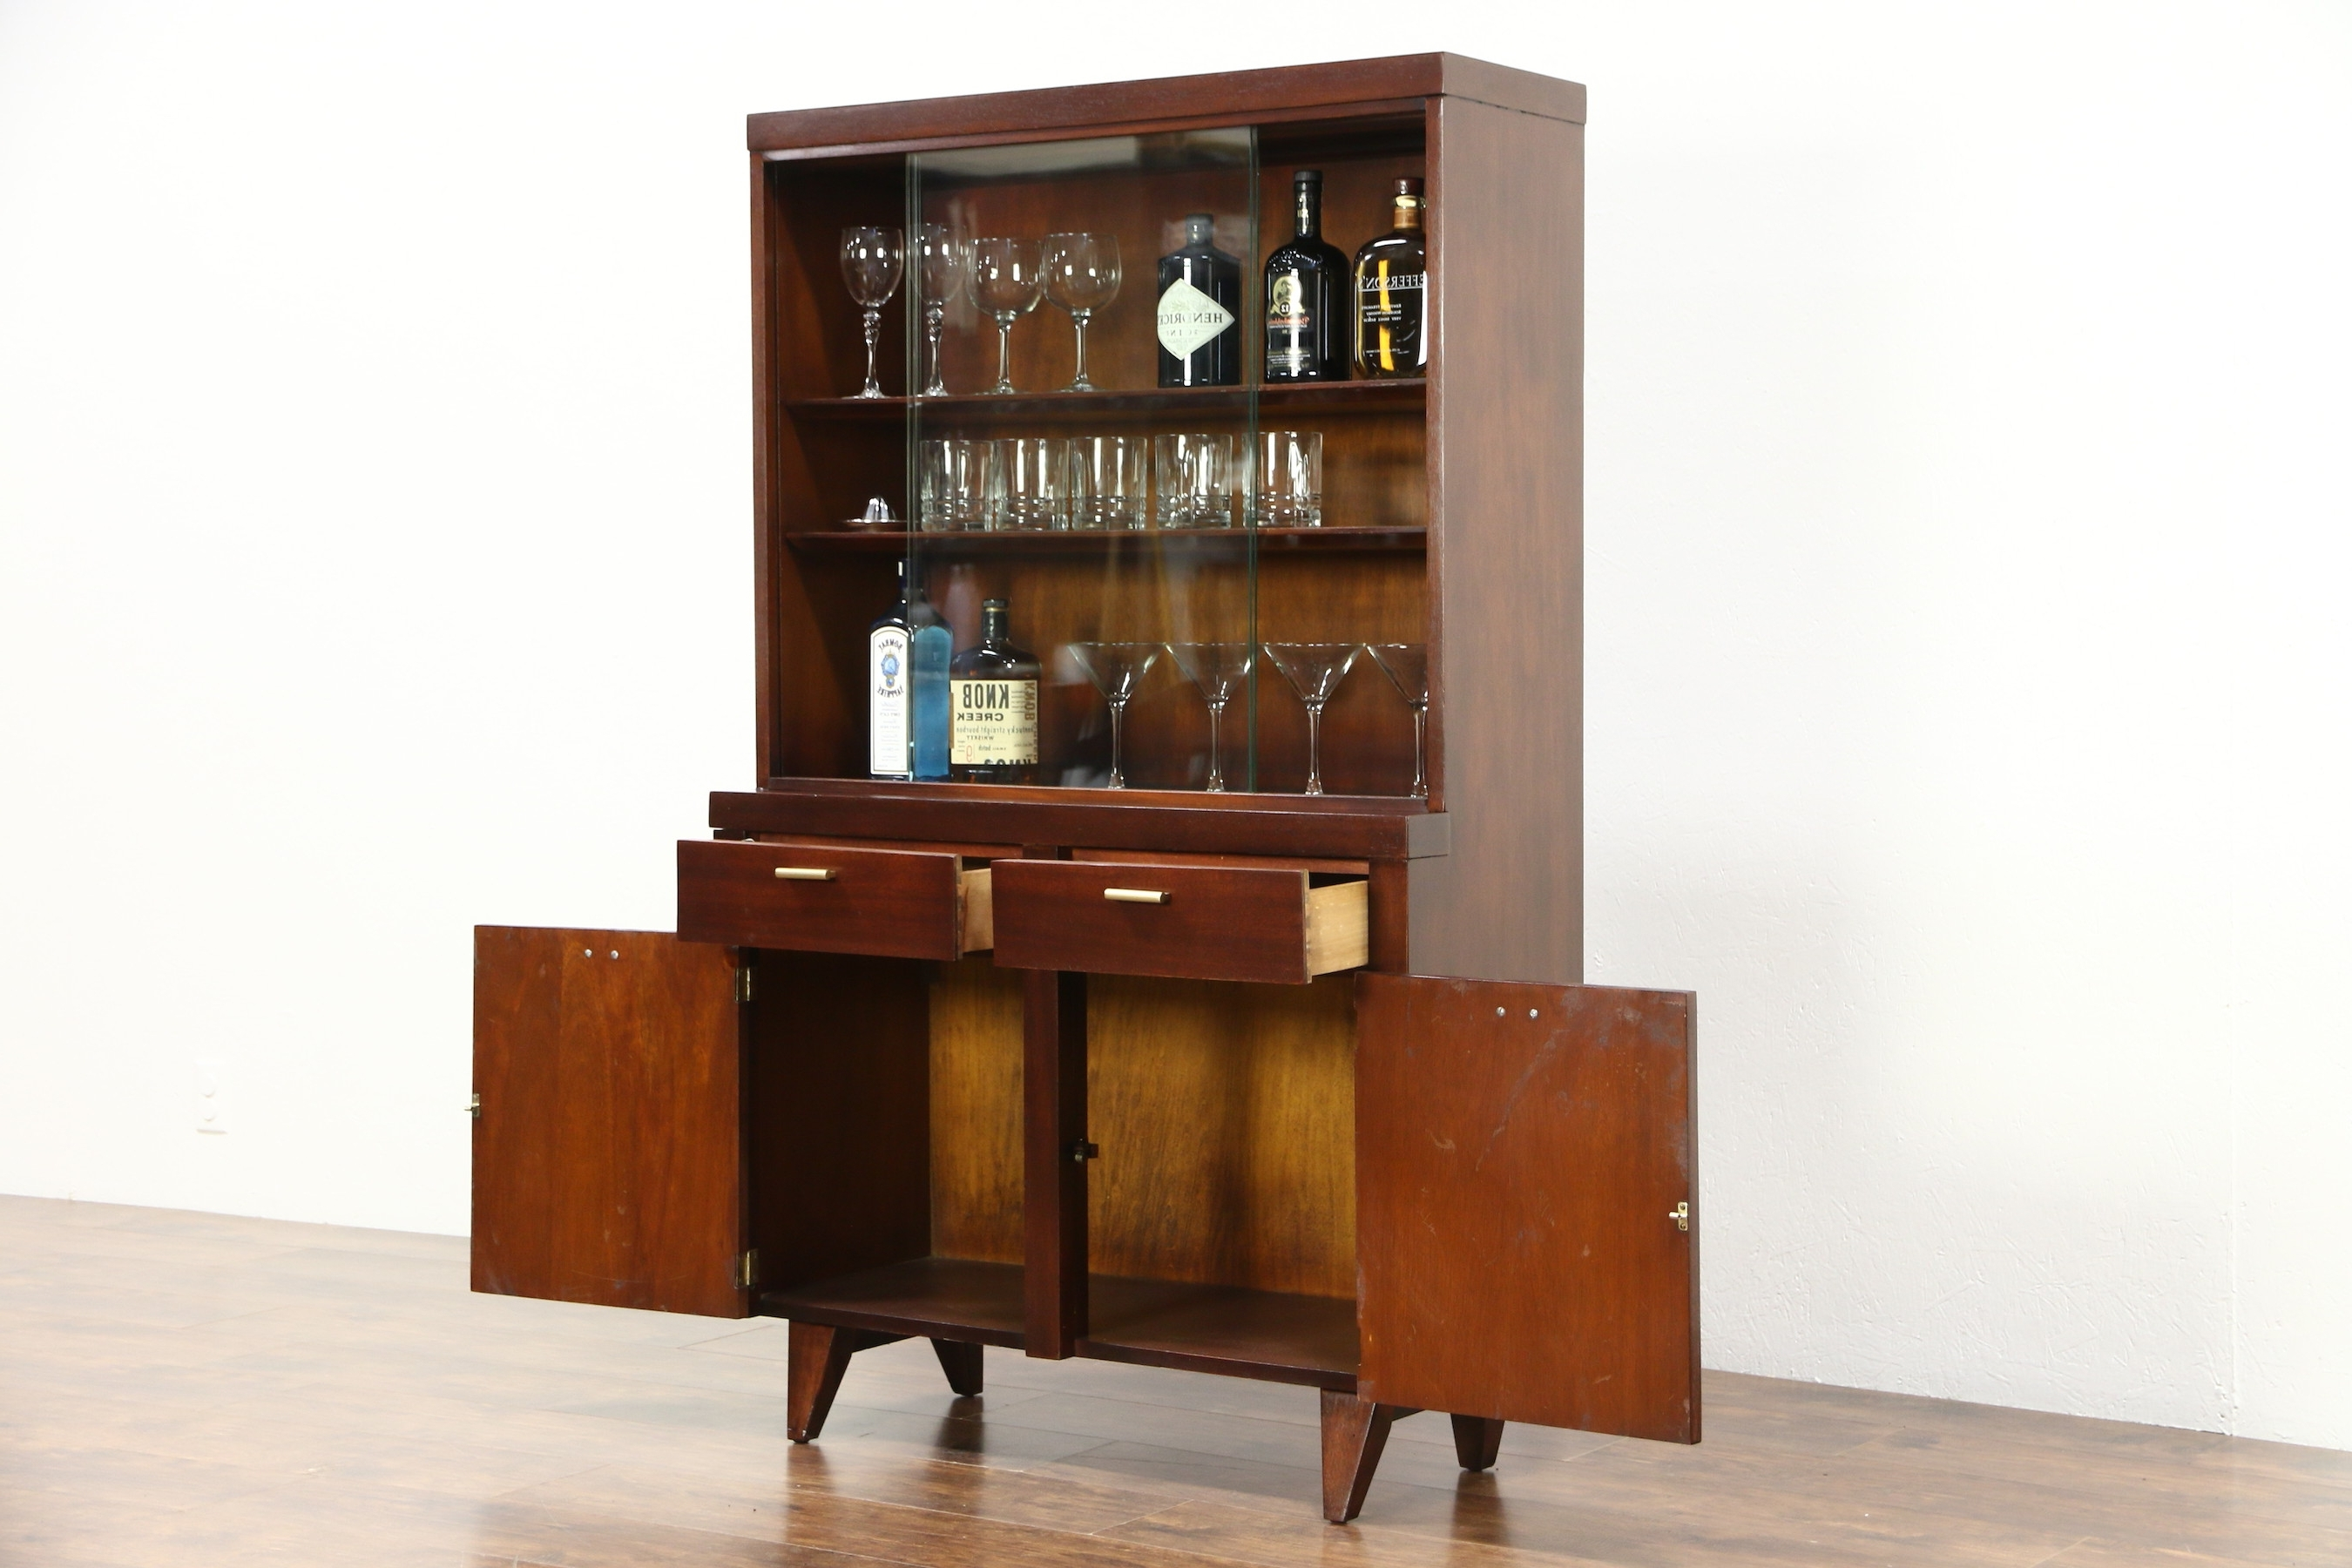 Trendy Modern Breakfront Pertaining To Sold – Midcentury Modern 1960 Vintage Bar, China Or Curio Display (View 12 of 15)